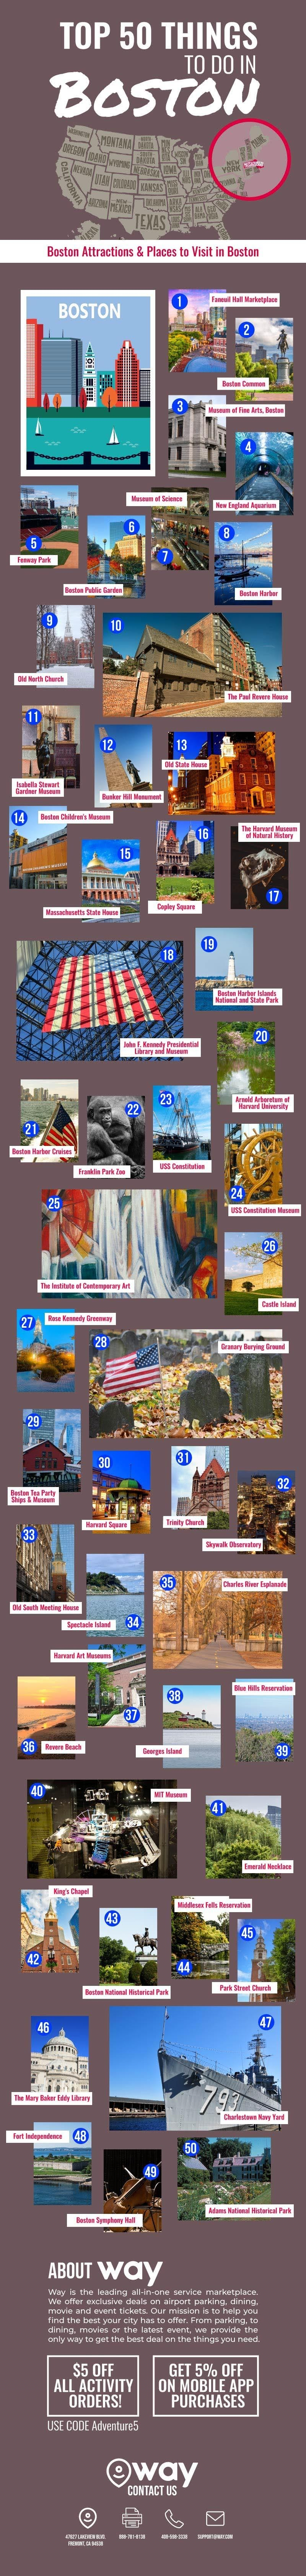 Top 50 Things to Do in Boston #infographic